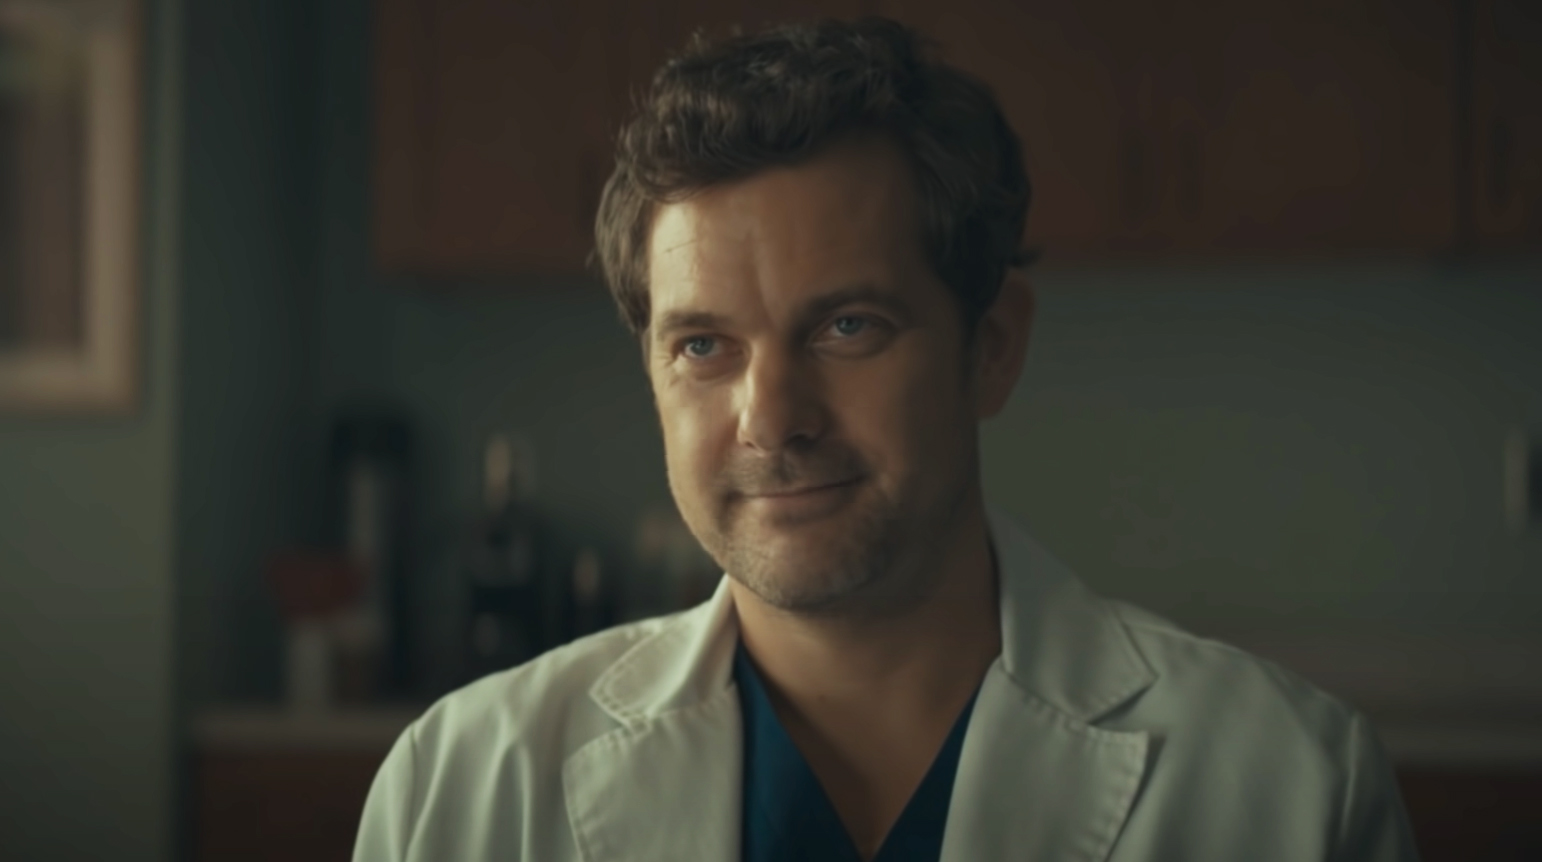 dr death | Best TV shows 2021: From The White Lotus, to Marvel's Loki - CNET | The Paradise